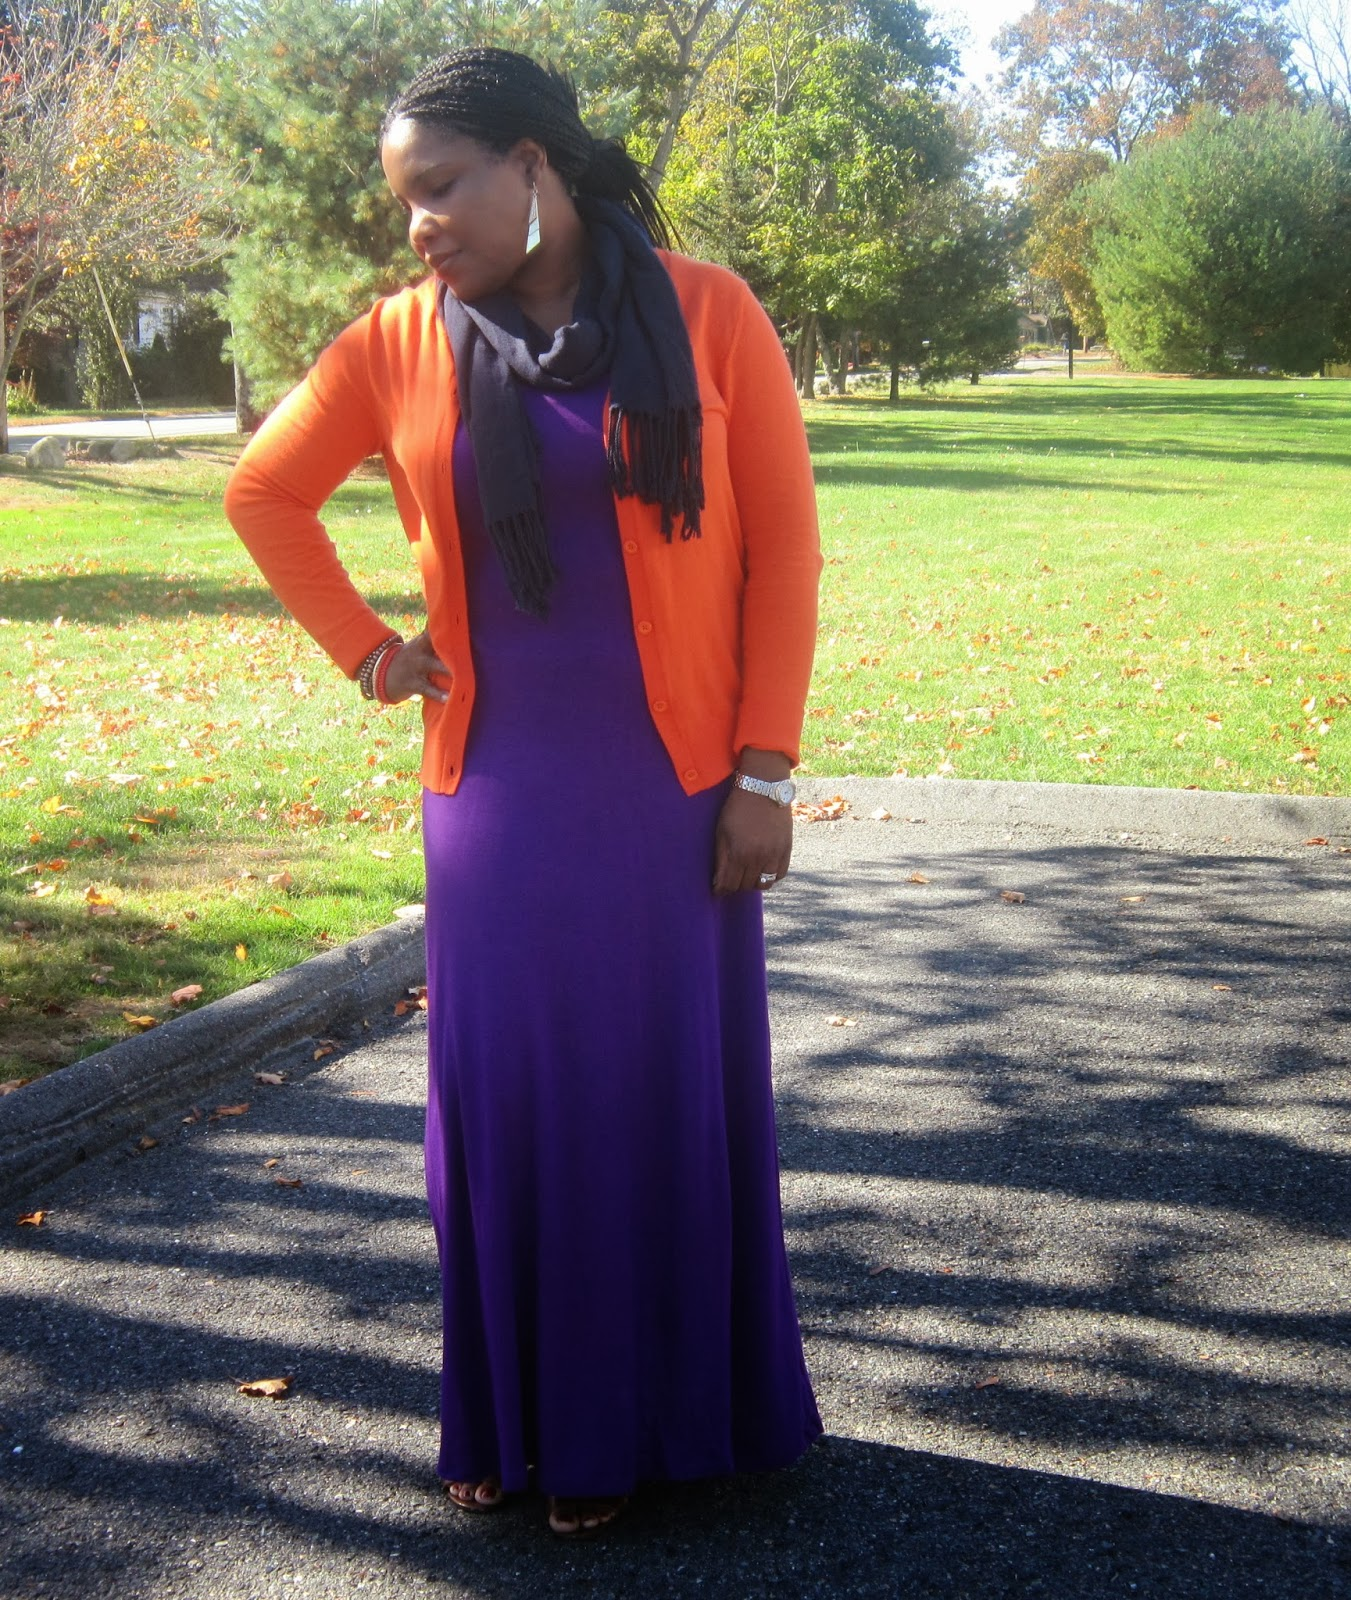 How to wear a maxi dress for fall, What to wear with maxi dress